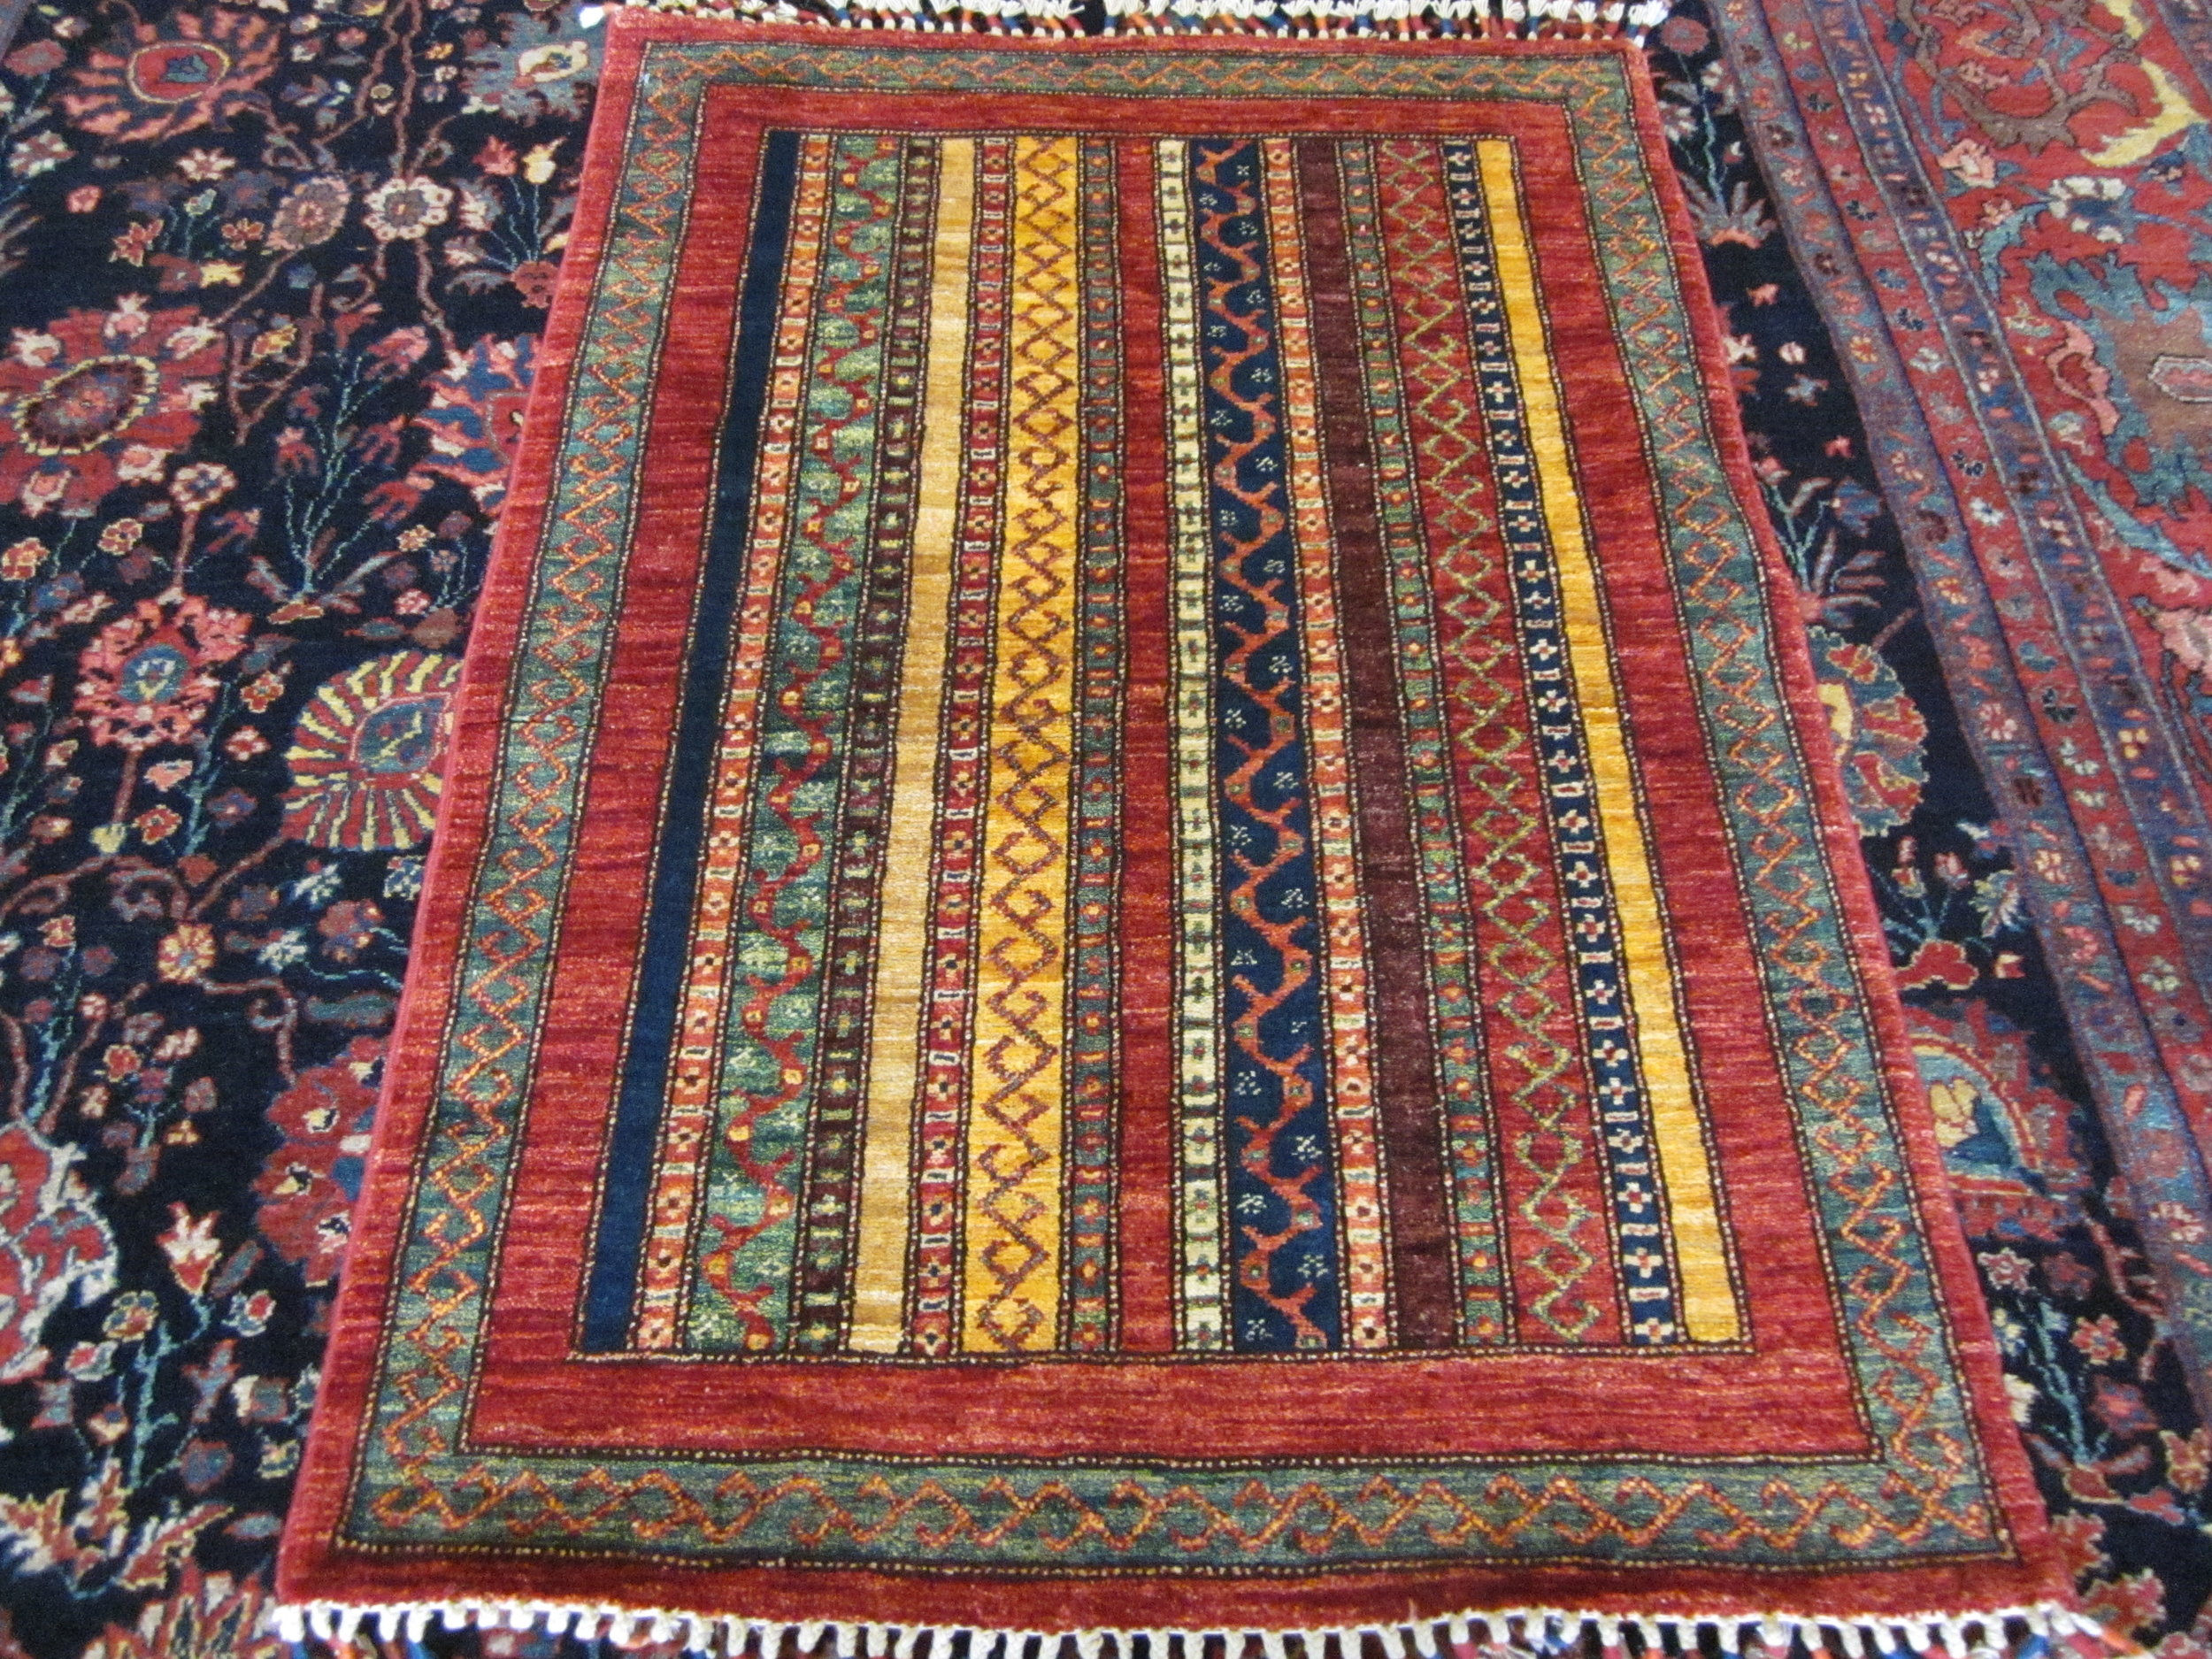 "#45) 2'9"" x 4' Afghan rug, tribal design."